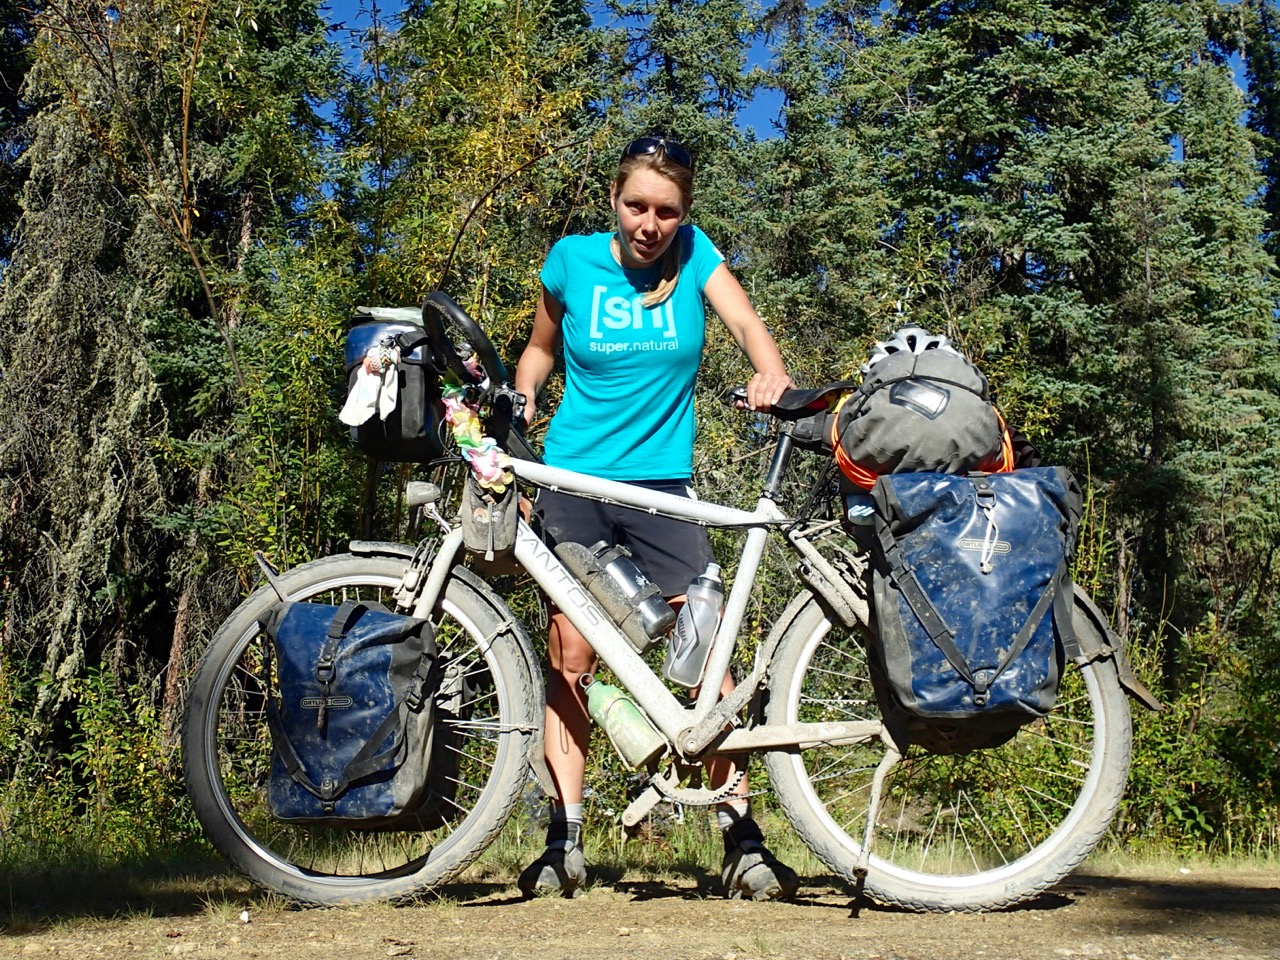 My bike and me after the 800km ride to Deadhorse, 17 hours in a truck and 38 hours without sleep